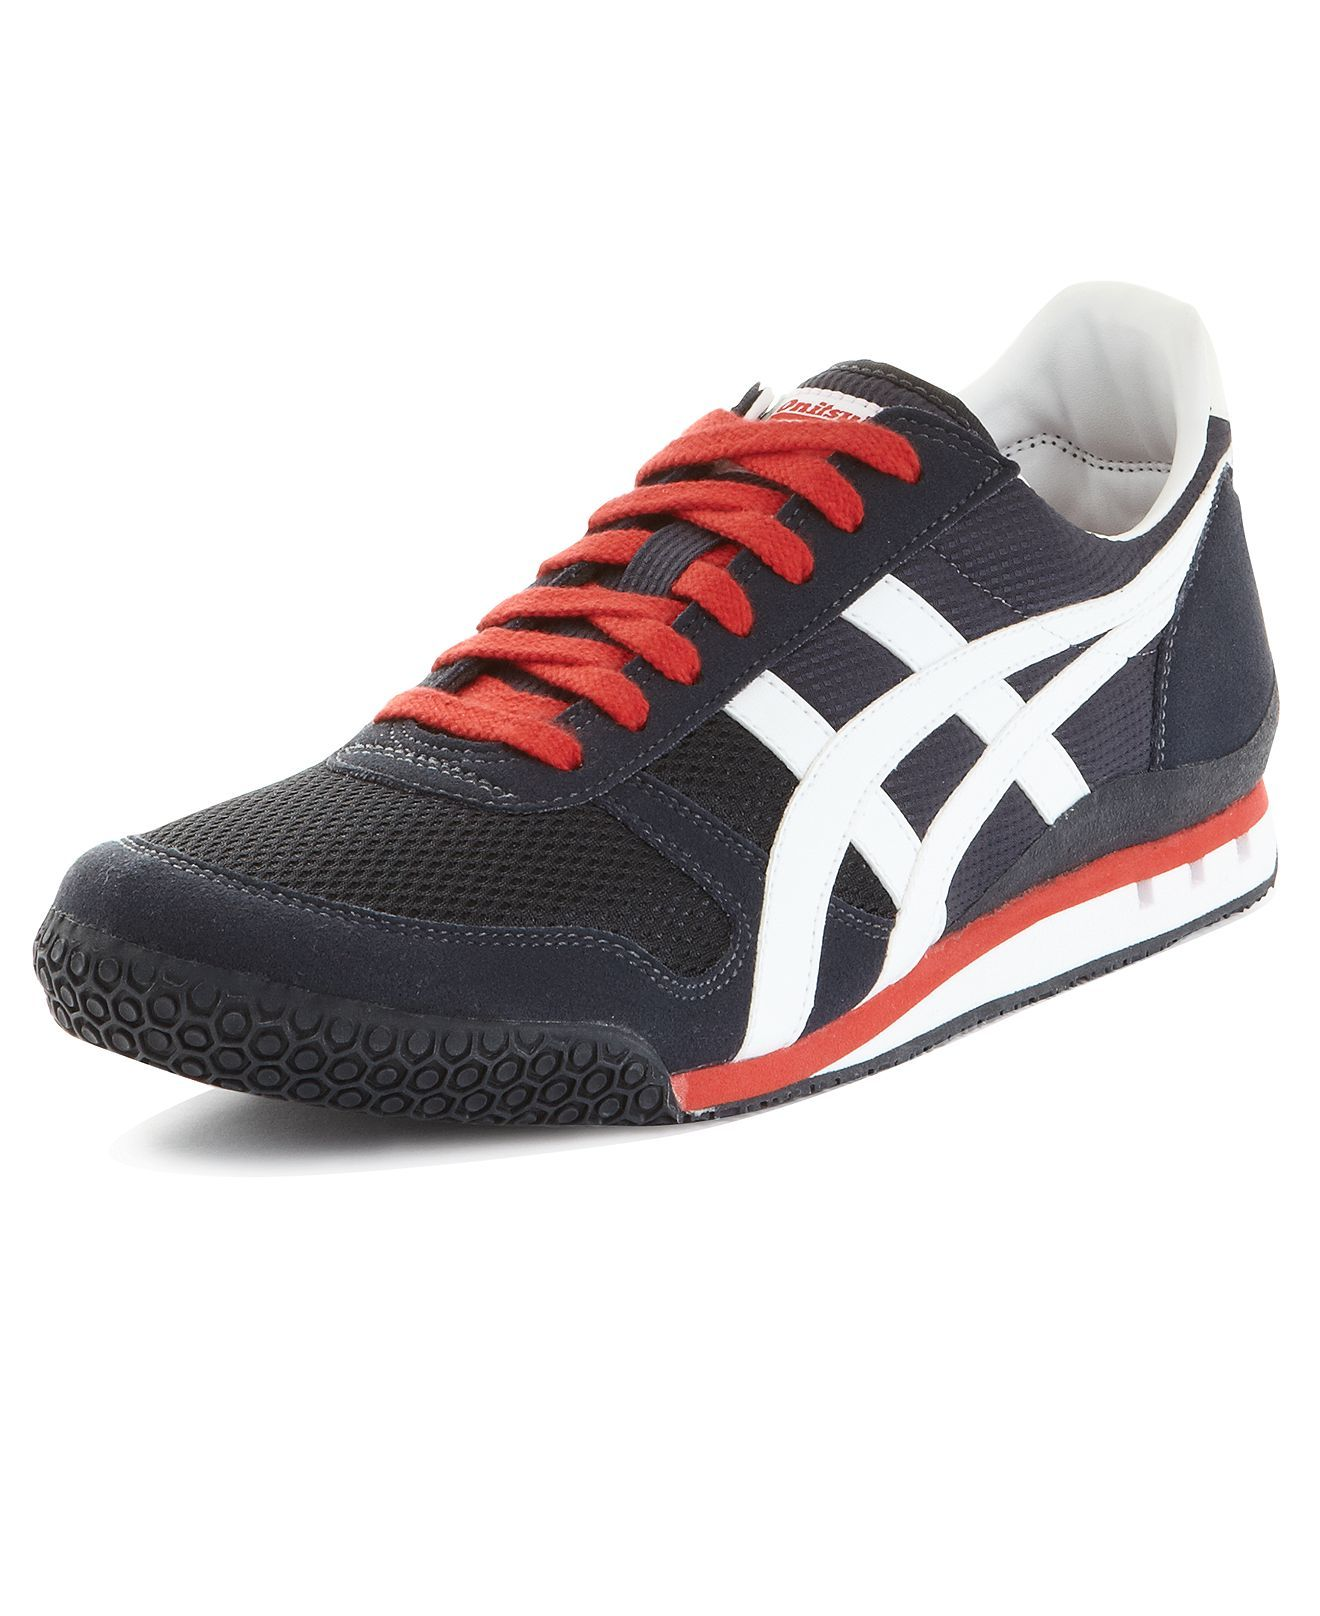 Onitsuka Tiger by Asics Shoes 37d9c41dfc375